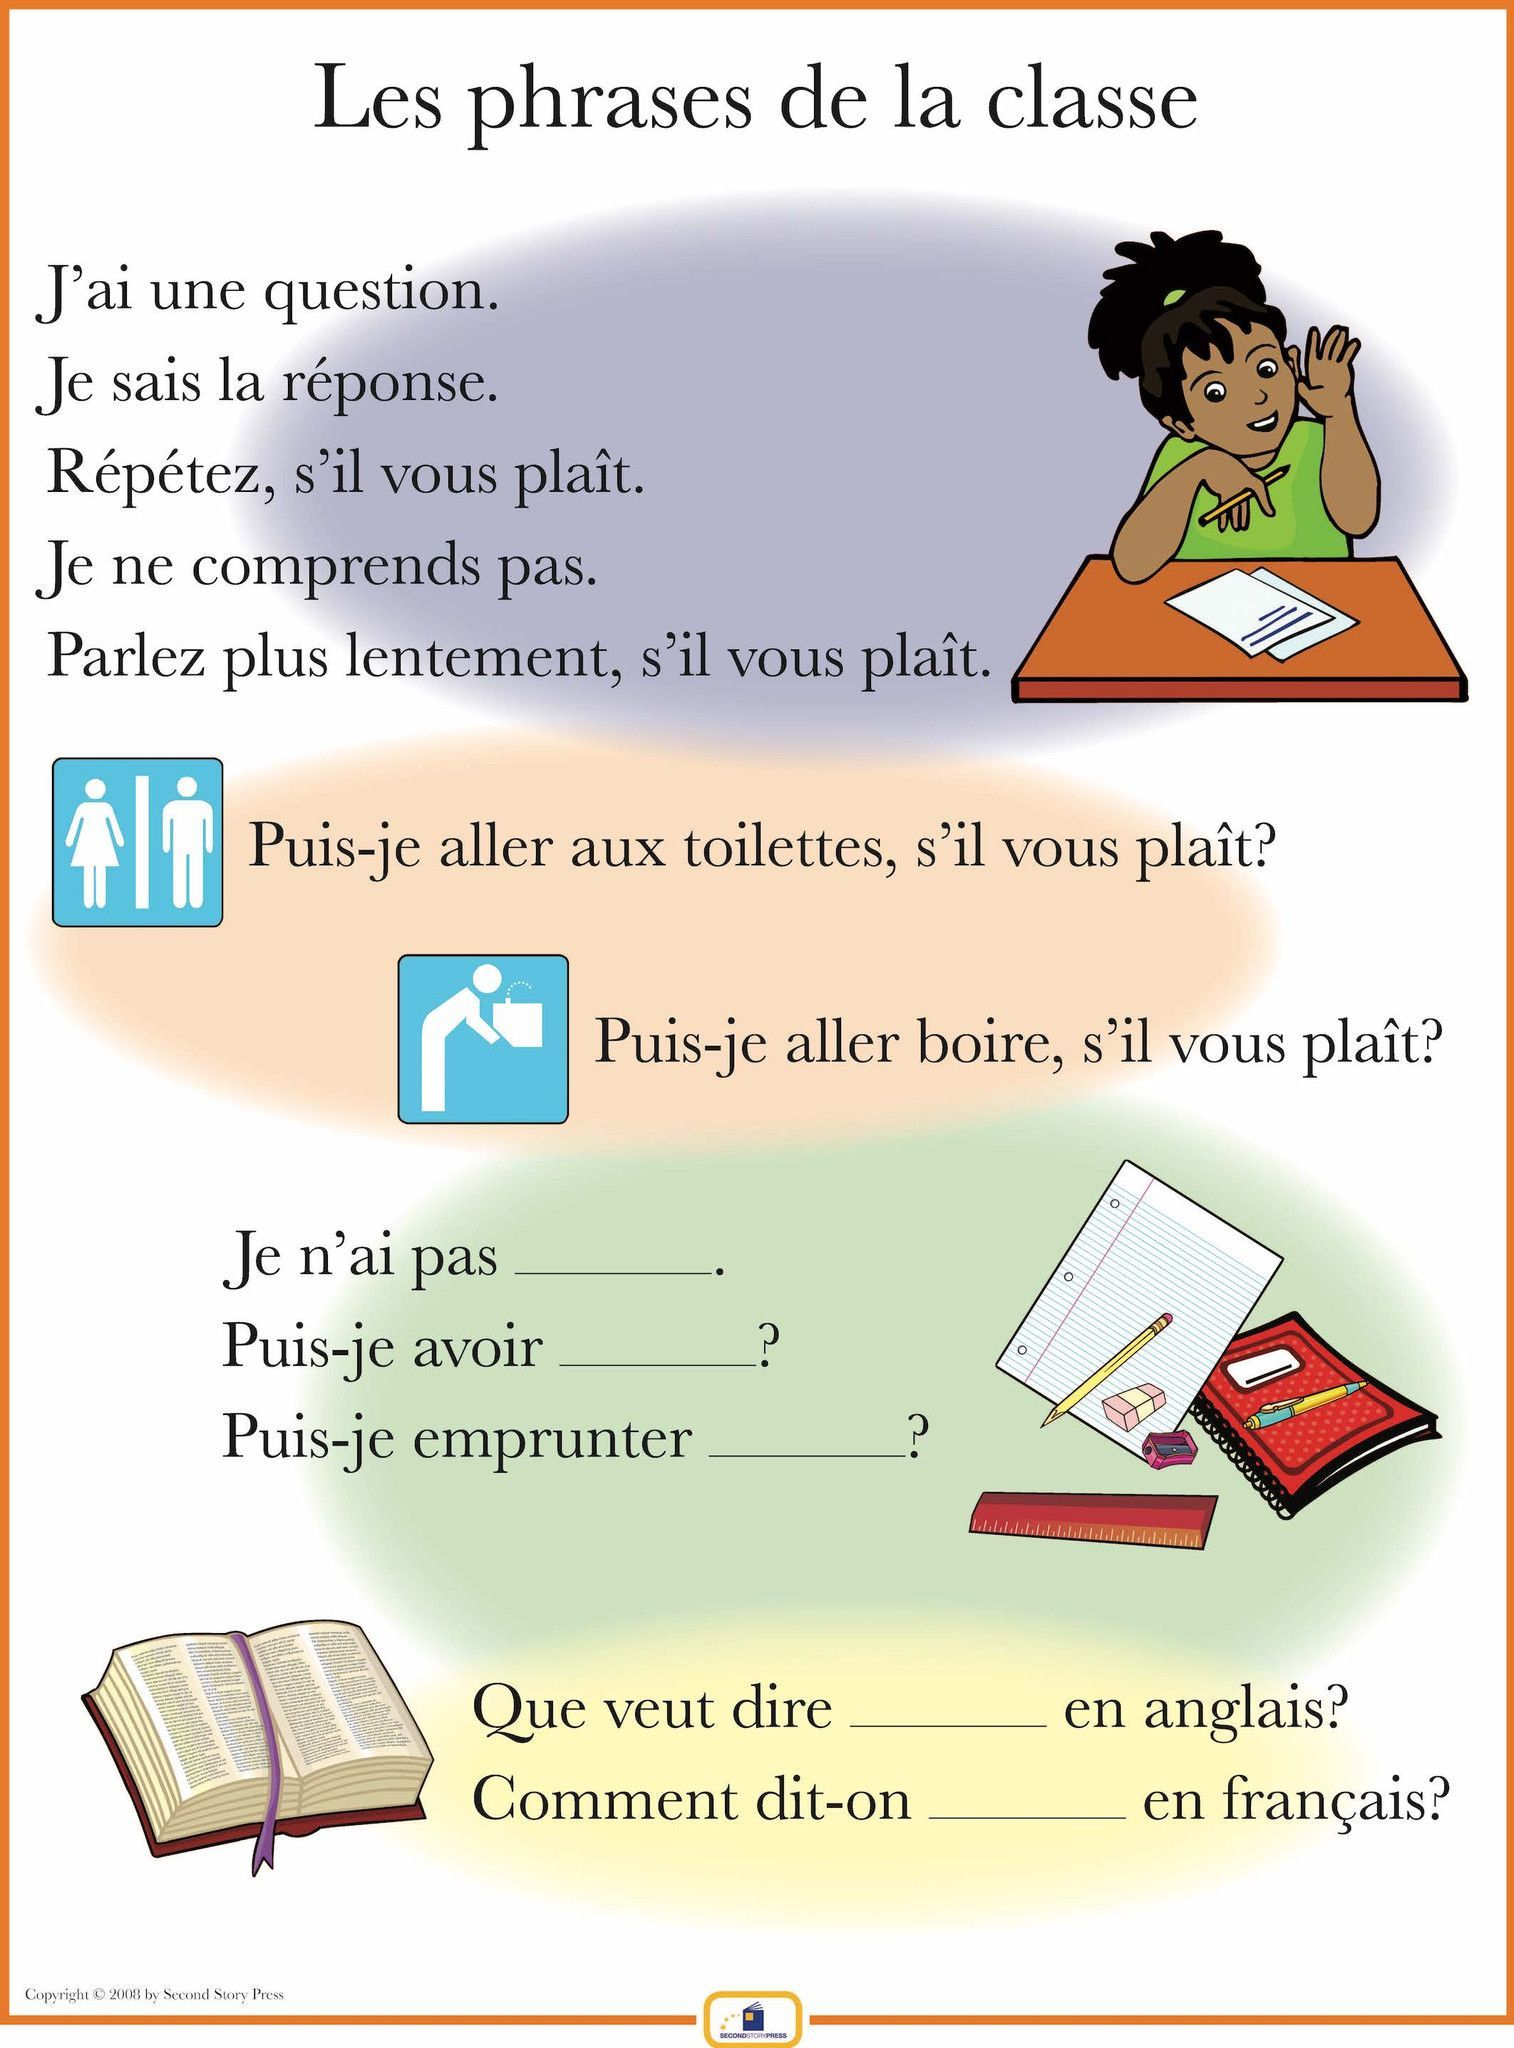 French Phrases Poster Italian French And Spanish Language